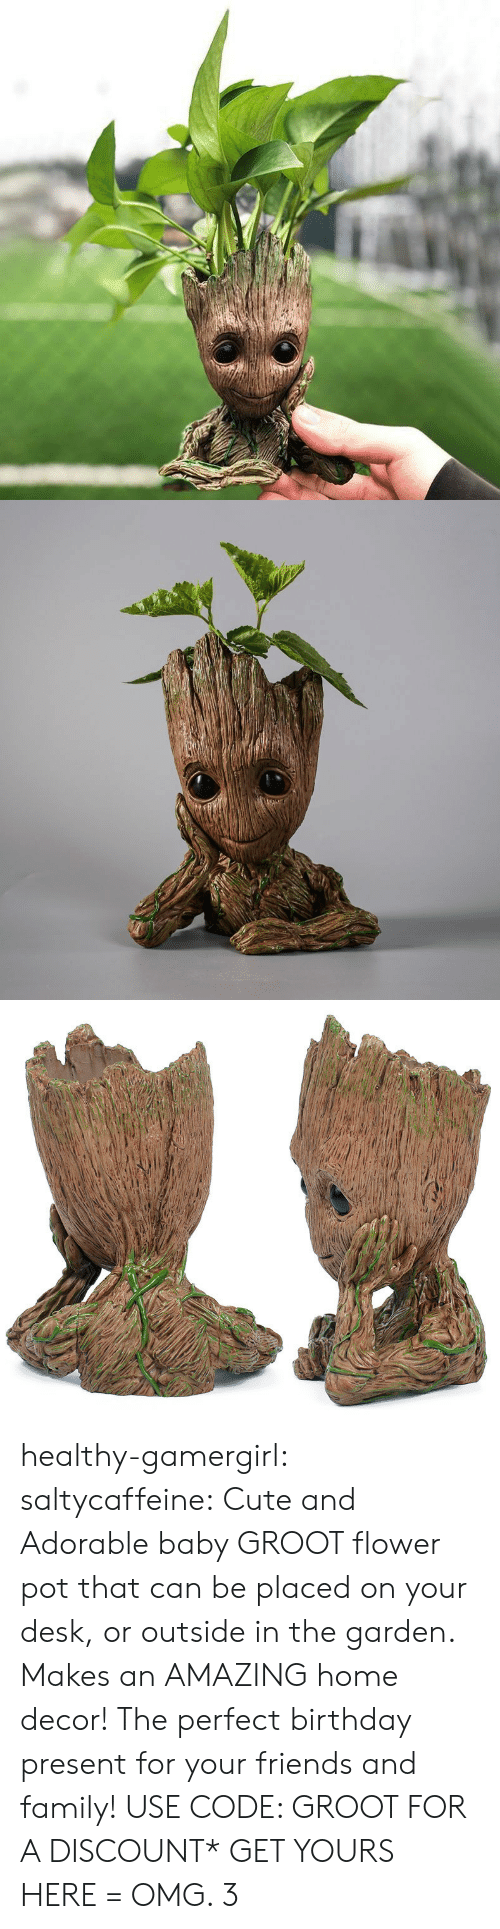 Birthday, Cute, and Family: healthy-gamergirl:  saltycaffeine: Cute and Adorable baby GROOT flower pot that can be placed on your desk, or outside in the garden. Makes an AMAZING home decor! The perfect birthday present for your friends and family! USE CODE: GROOT FOR A DISCOUNT* GET YOURS HERE=  OMG. 3